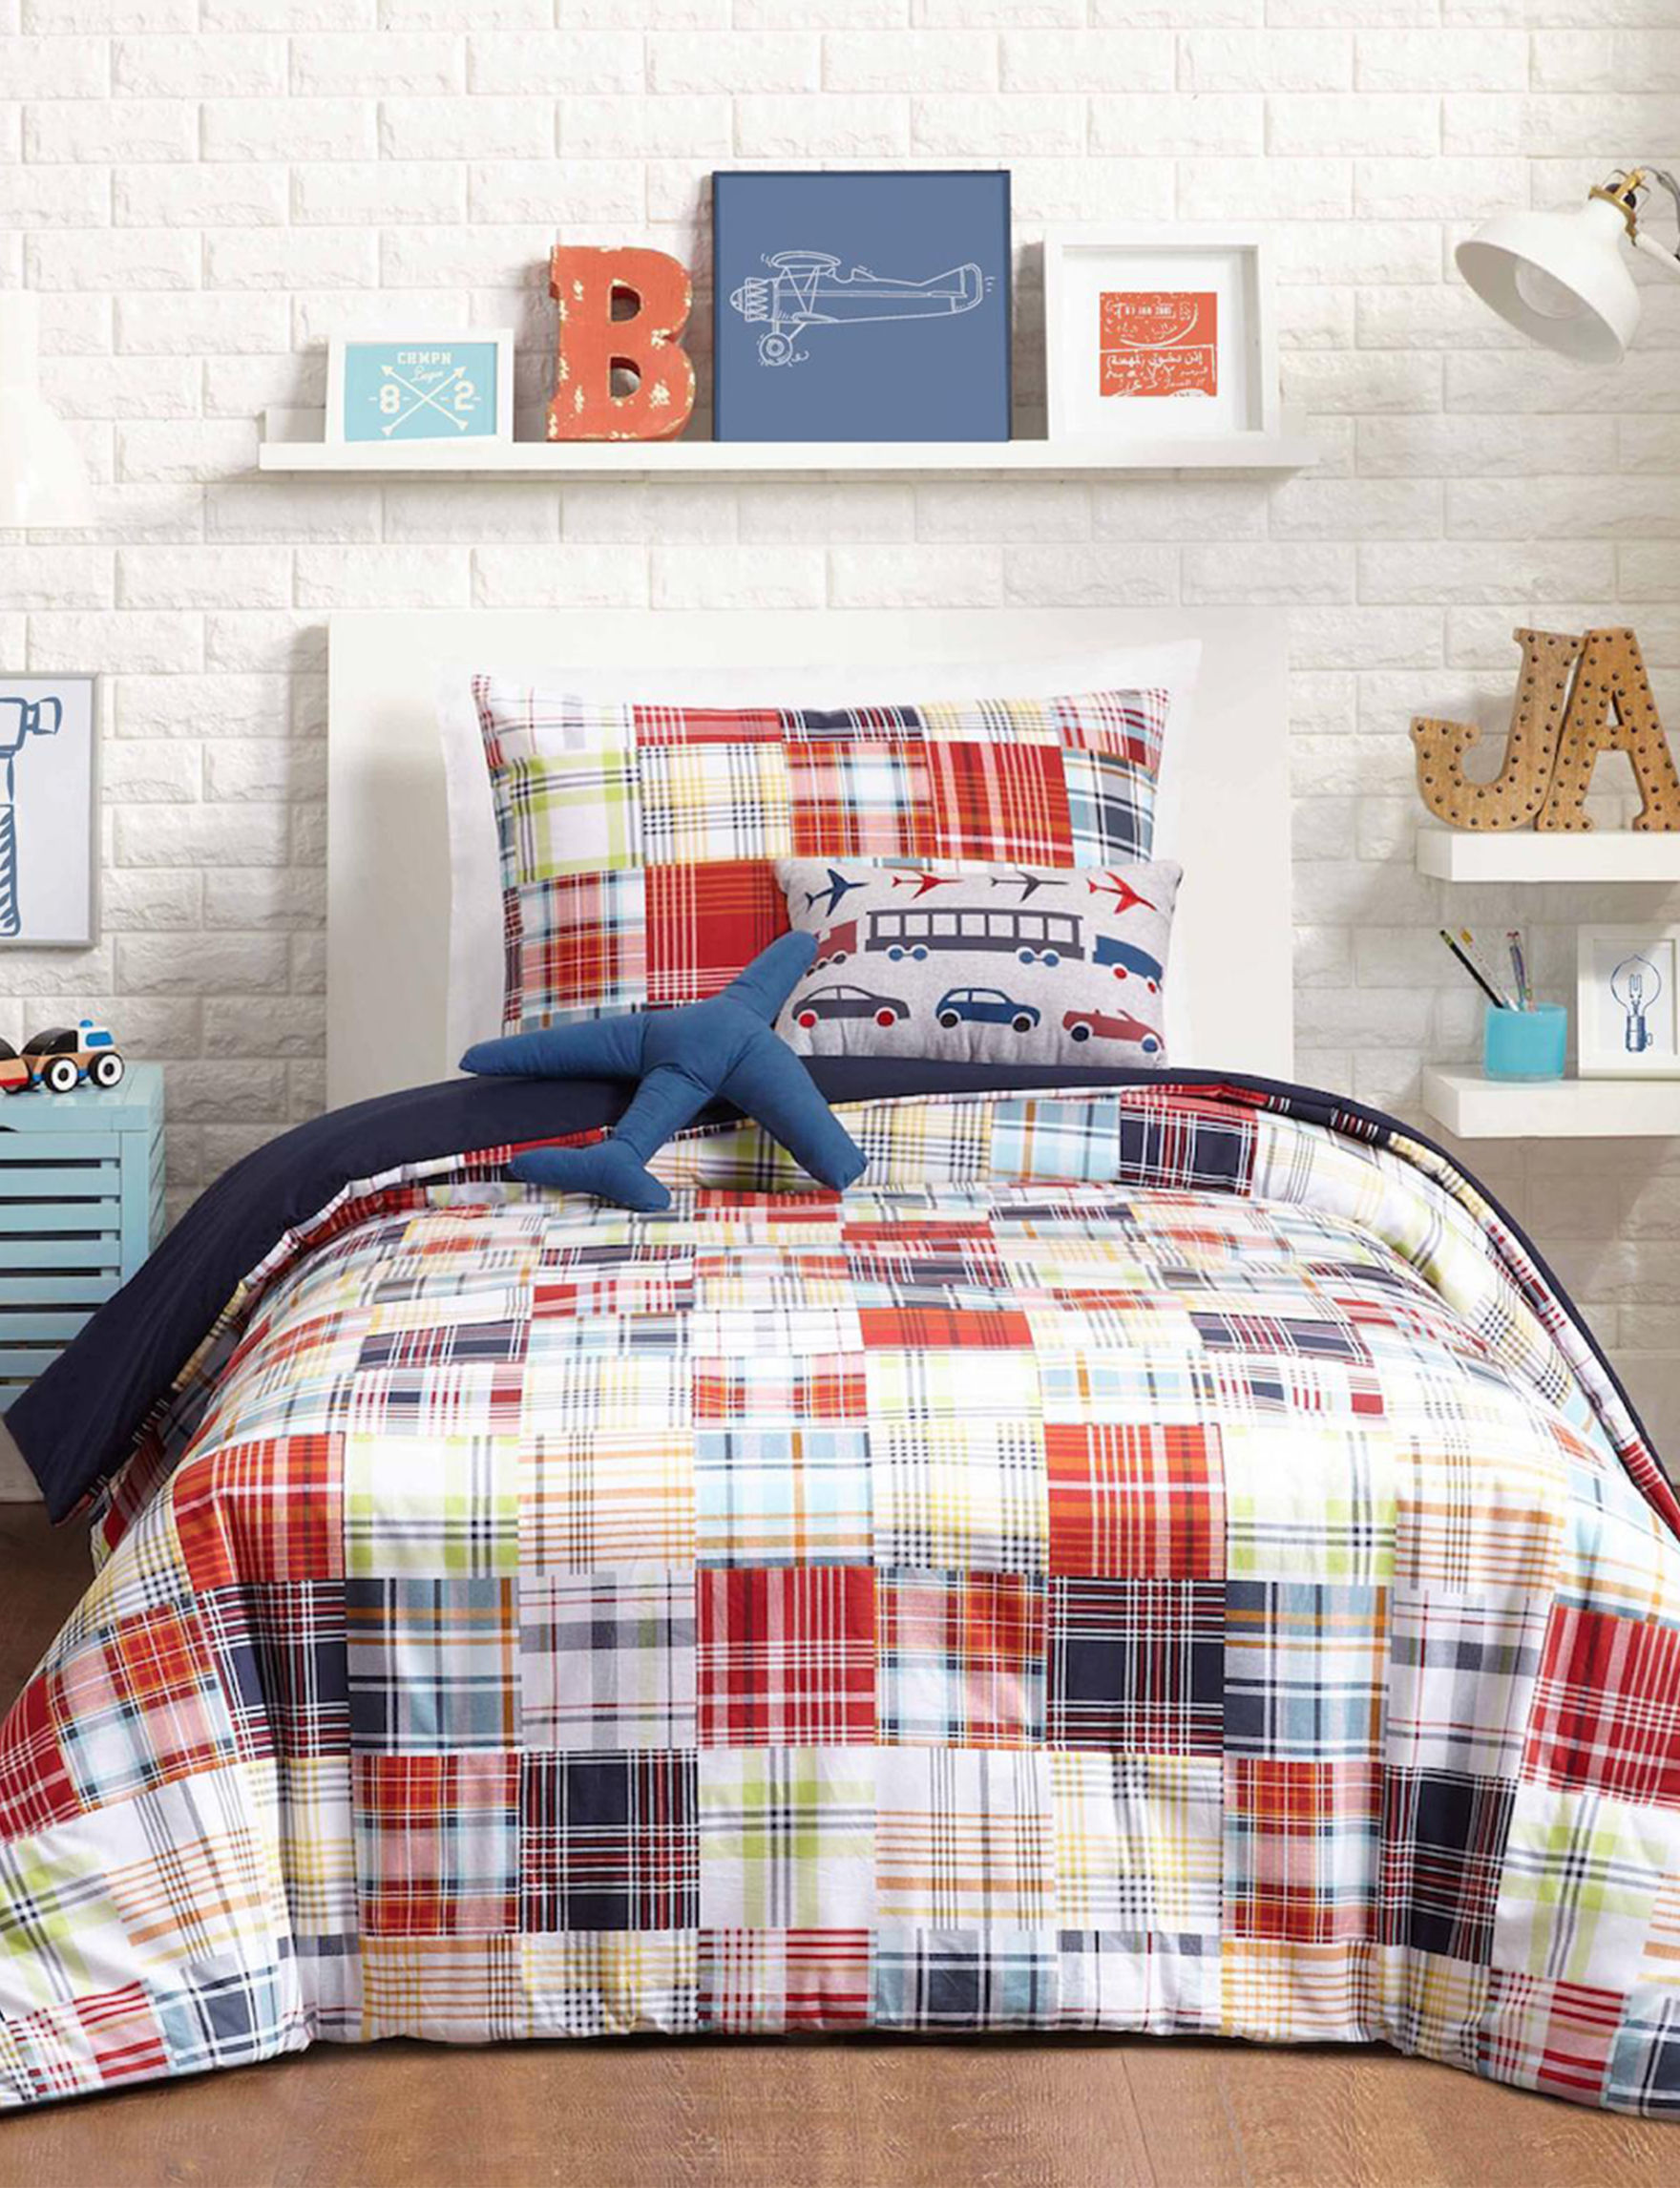 Urban Playground Blue Comforters & Comforter Sets